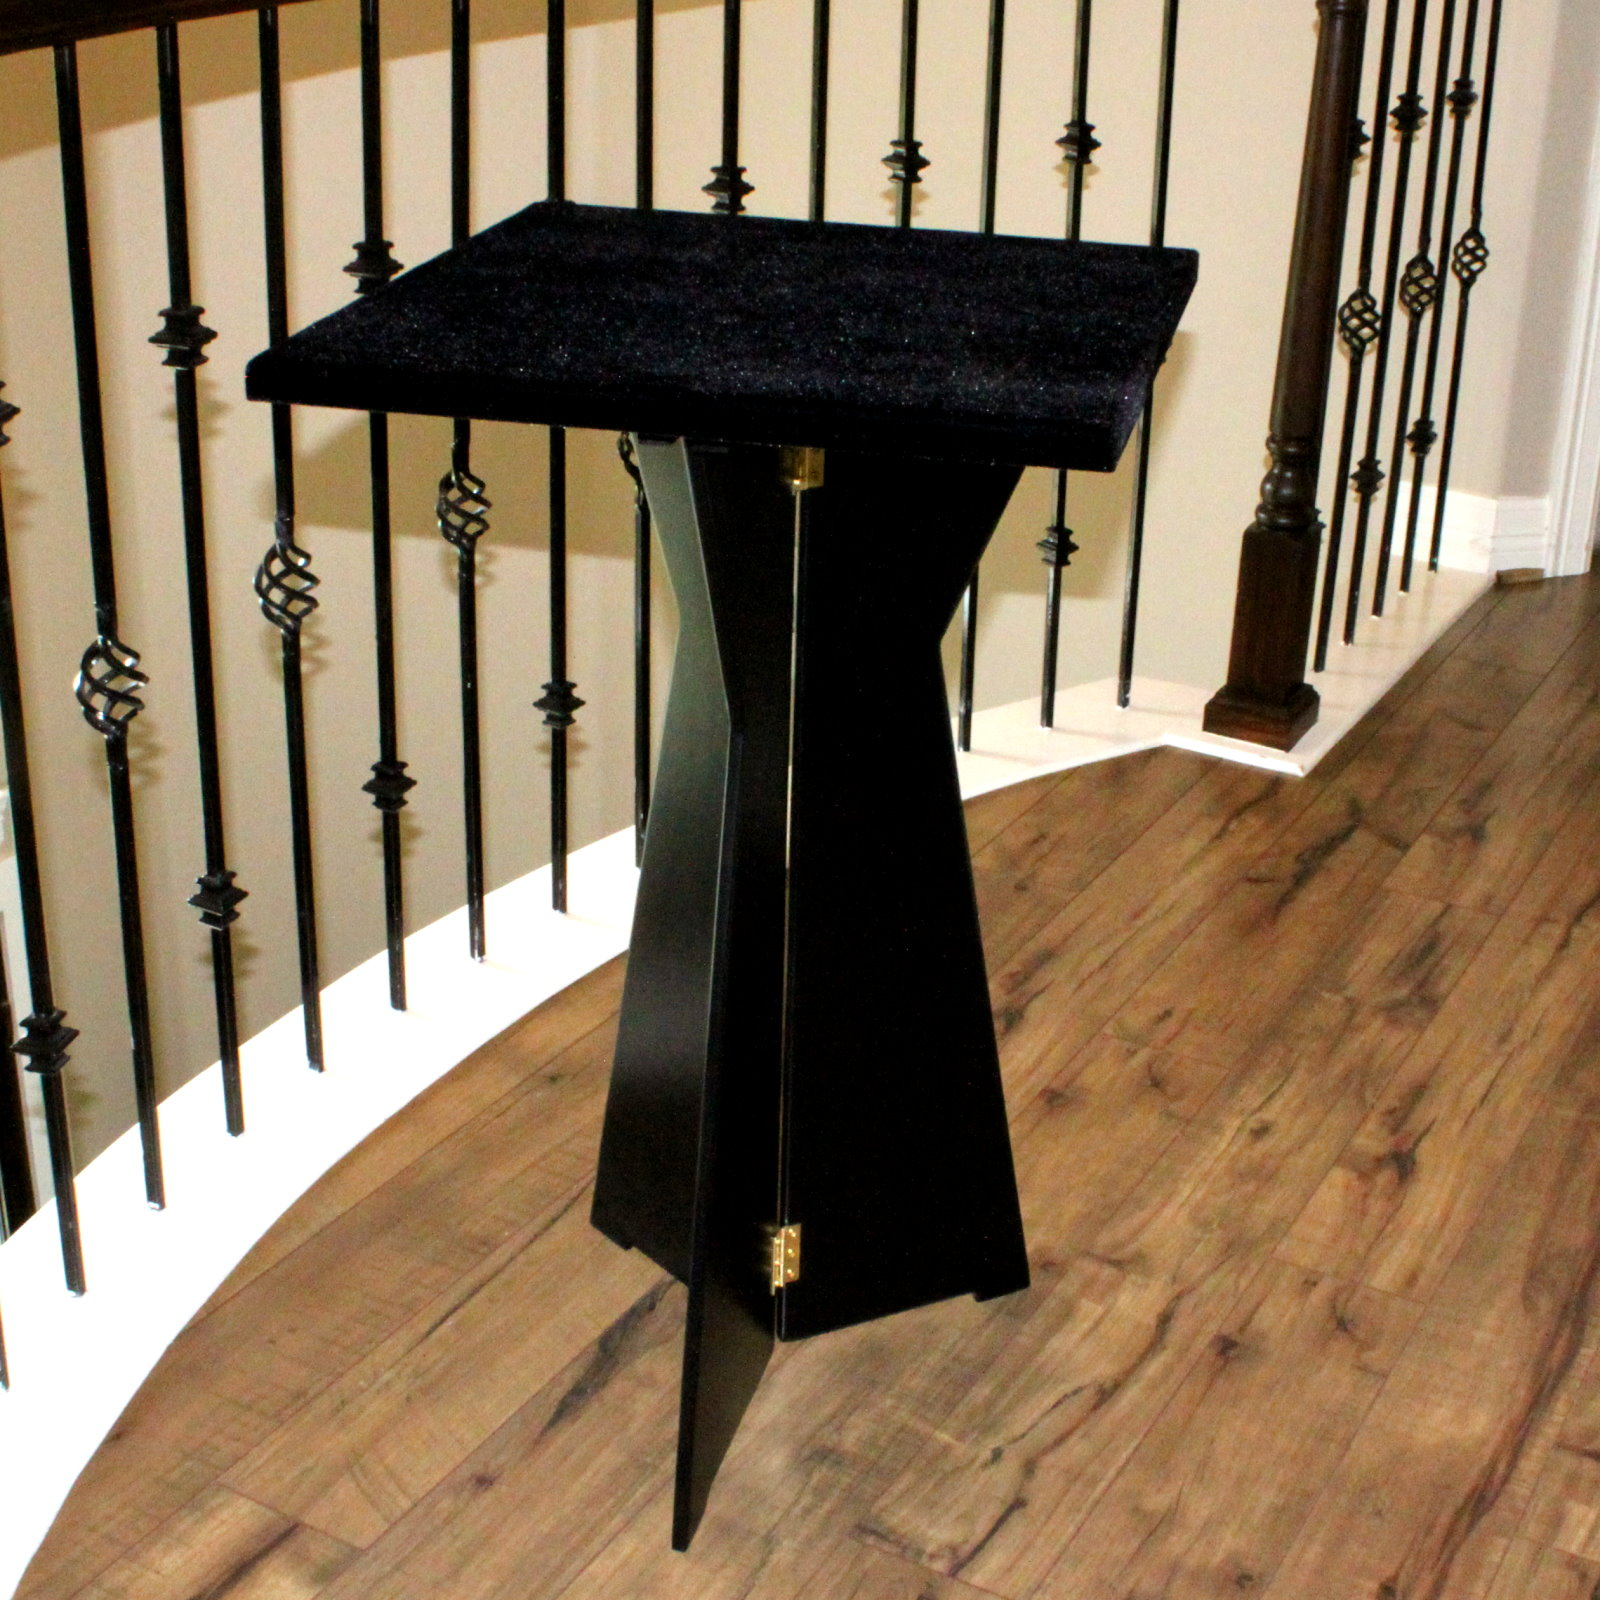 Working Man Series Table by Subdivided Studios